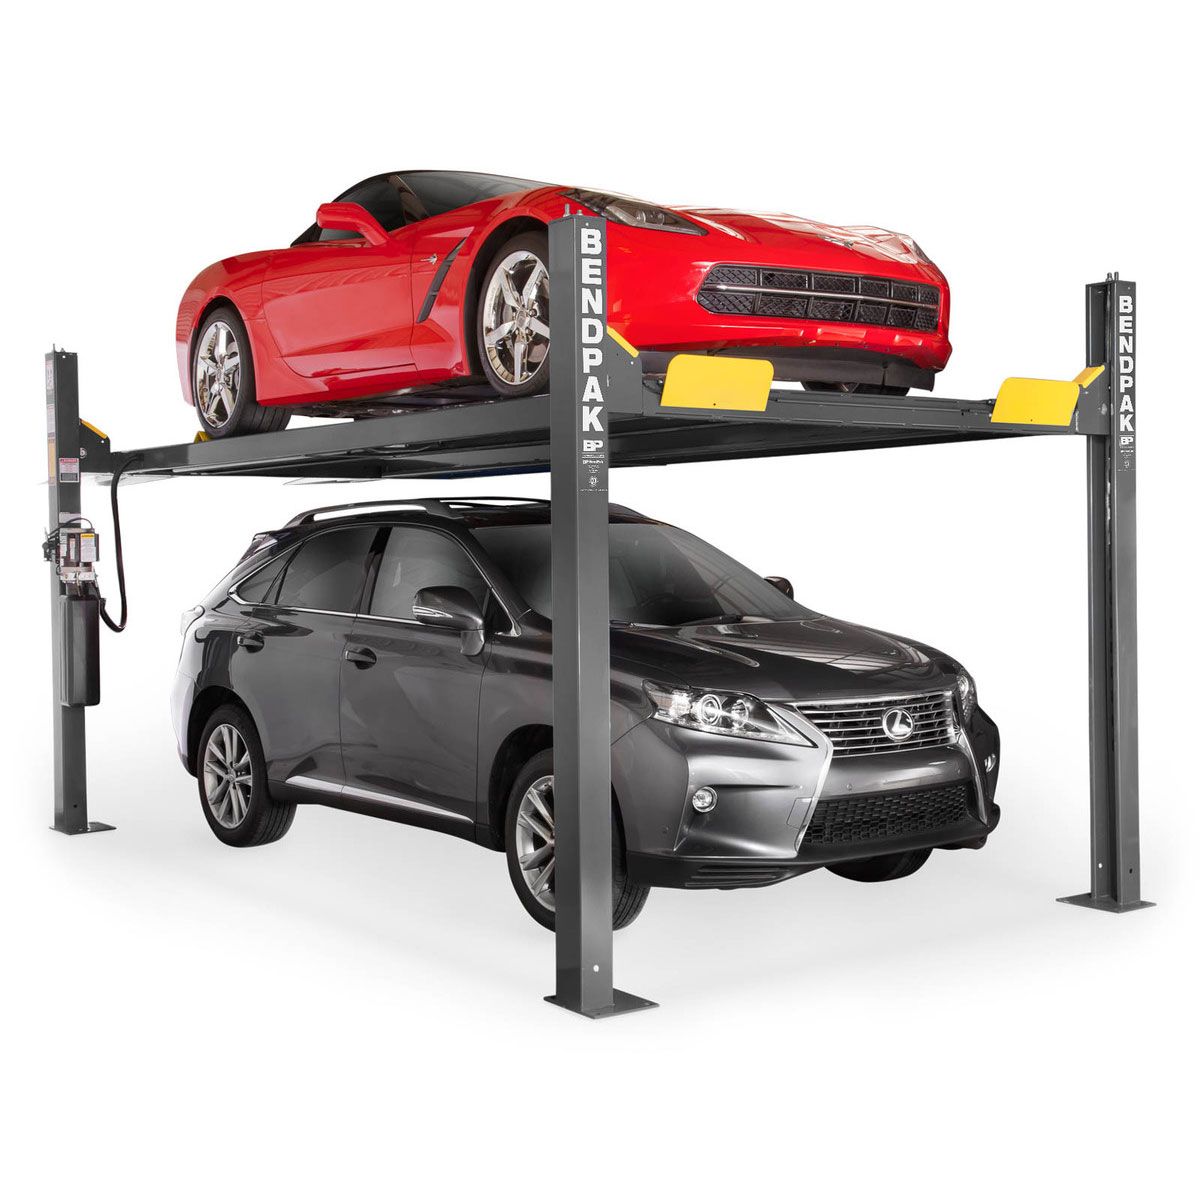 Four-Post vehicle lifts from Babco